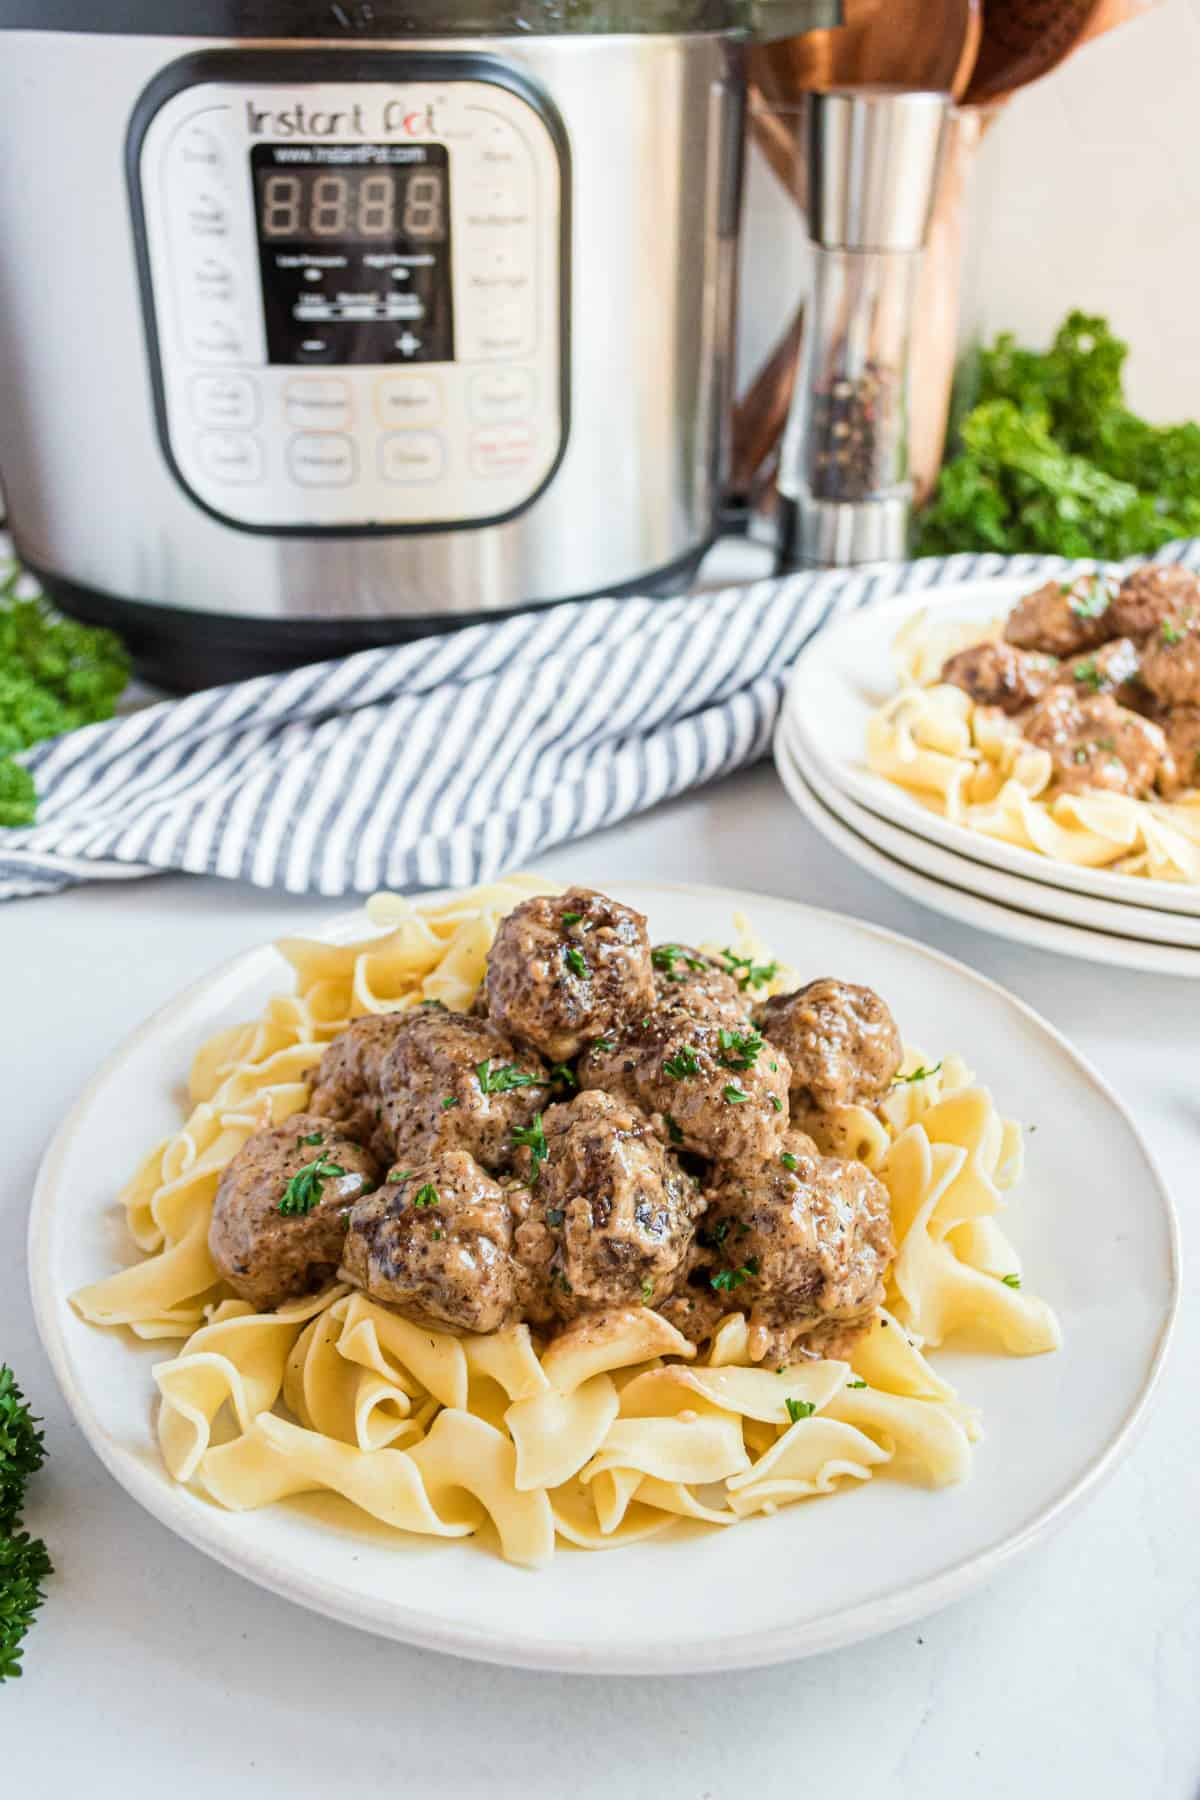 Swedish meatballs served on a plate of egg noodles with instant pot in background.